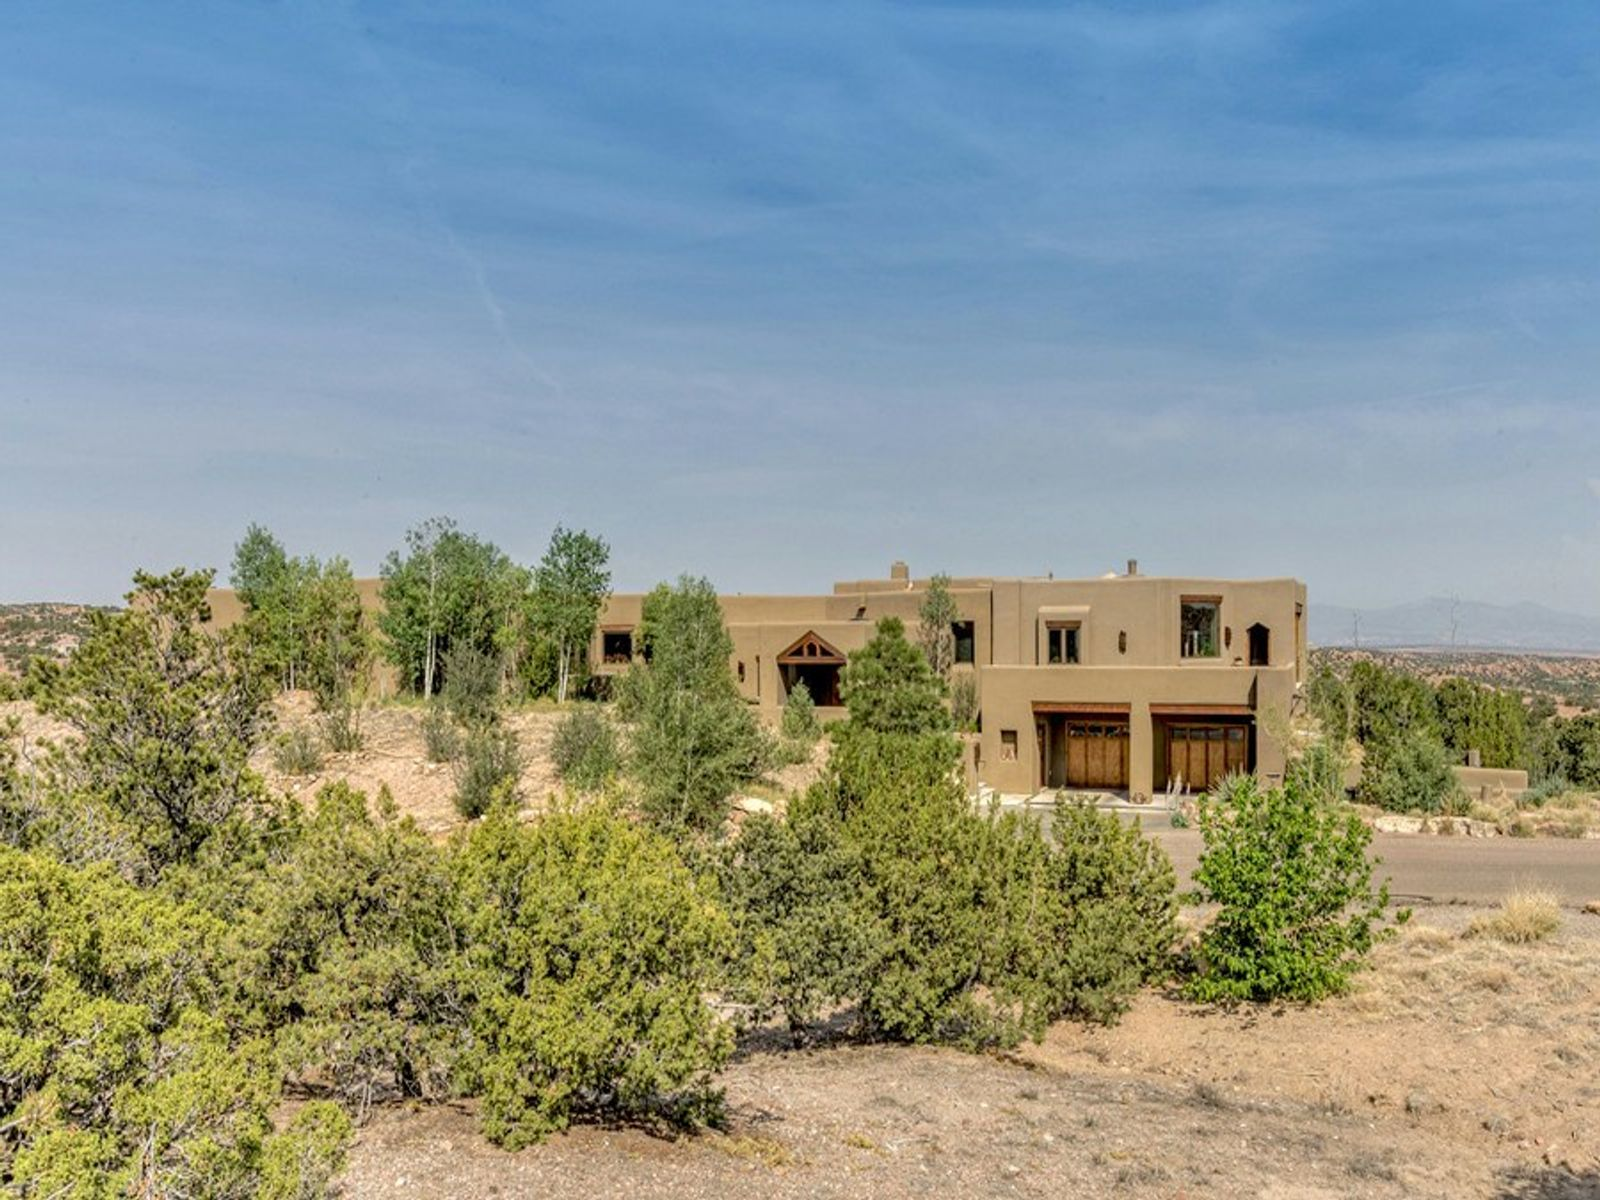 9 Lodge Circle, Santa Fe NM Single Family Home - Santa Fe Real Estate